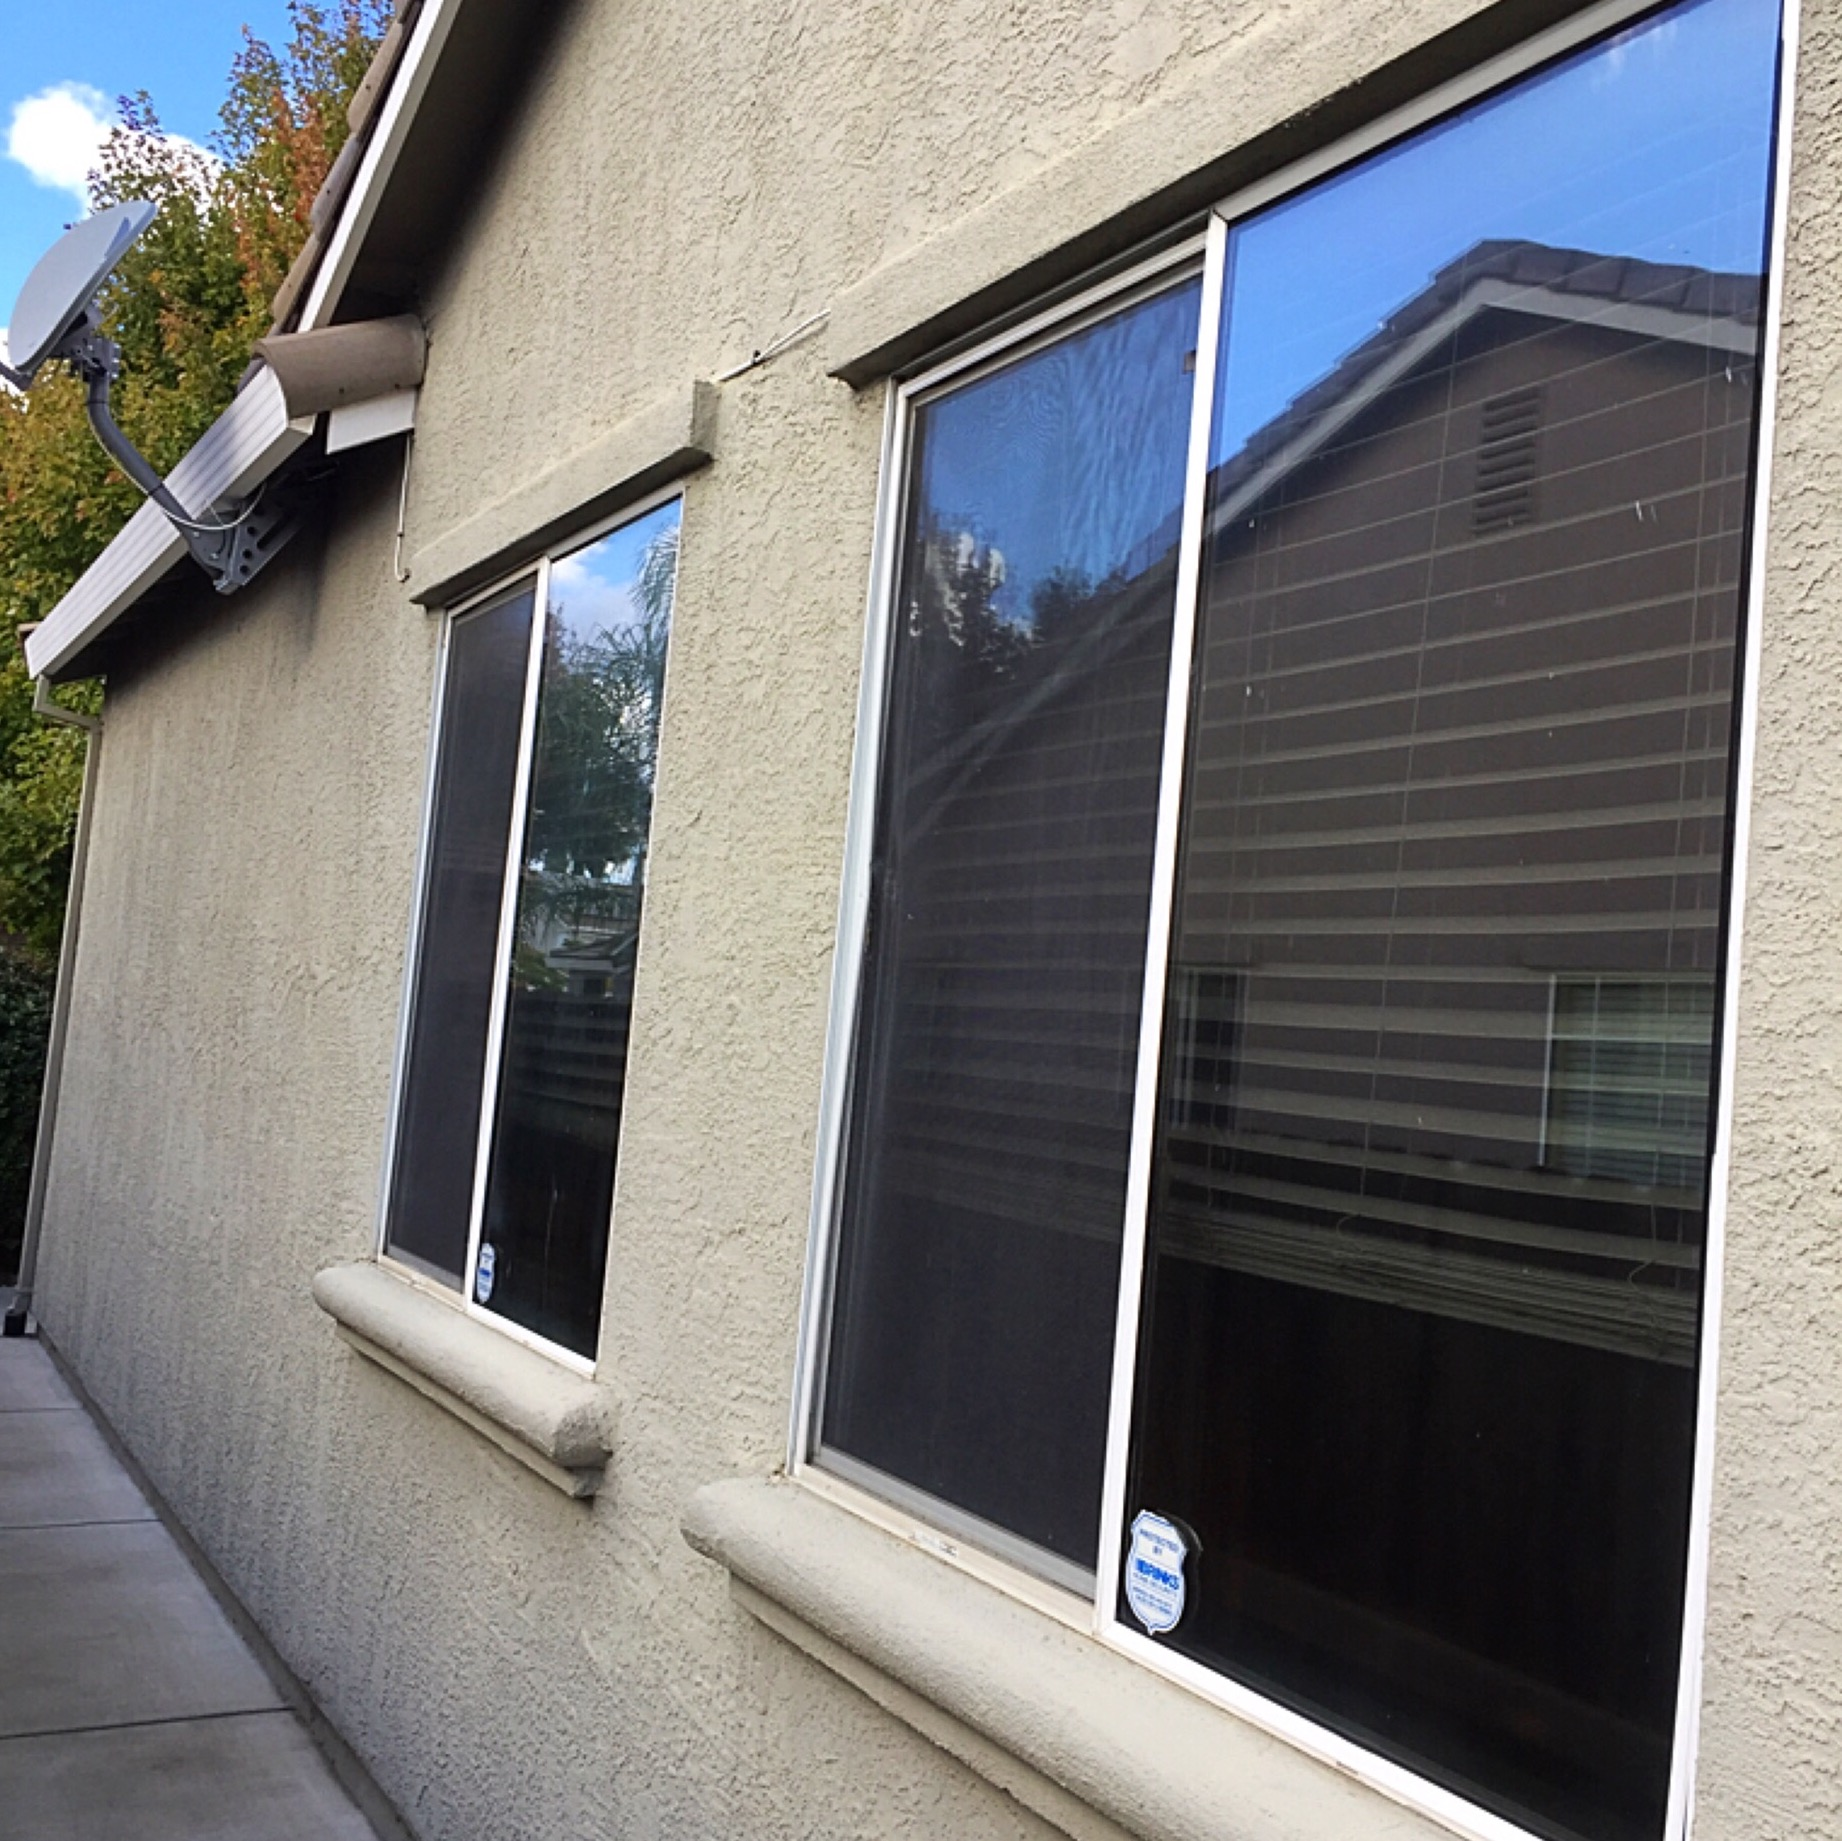 Bedroom Windows 25% tint